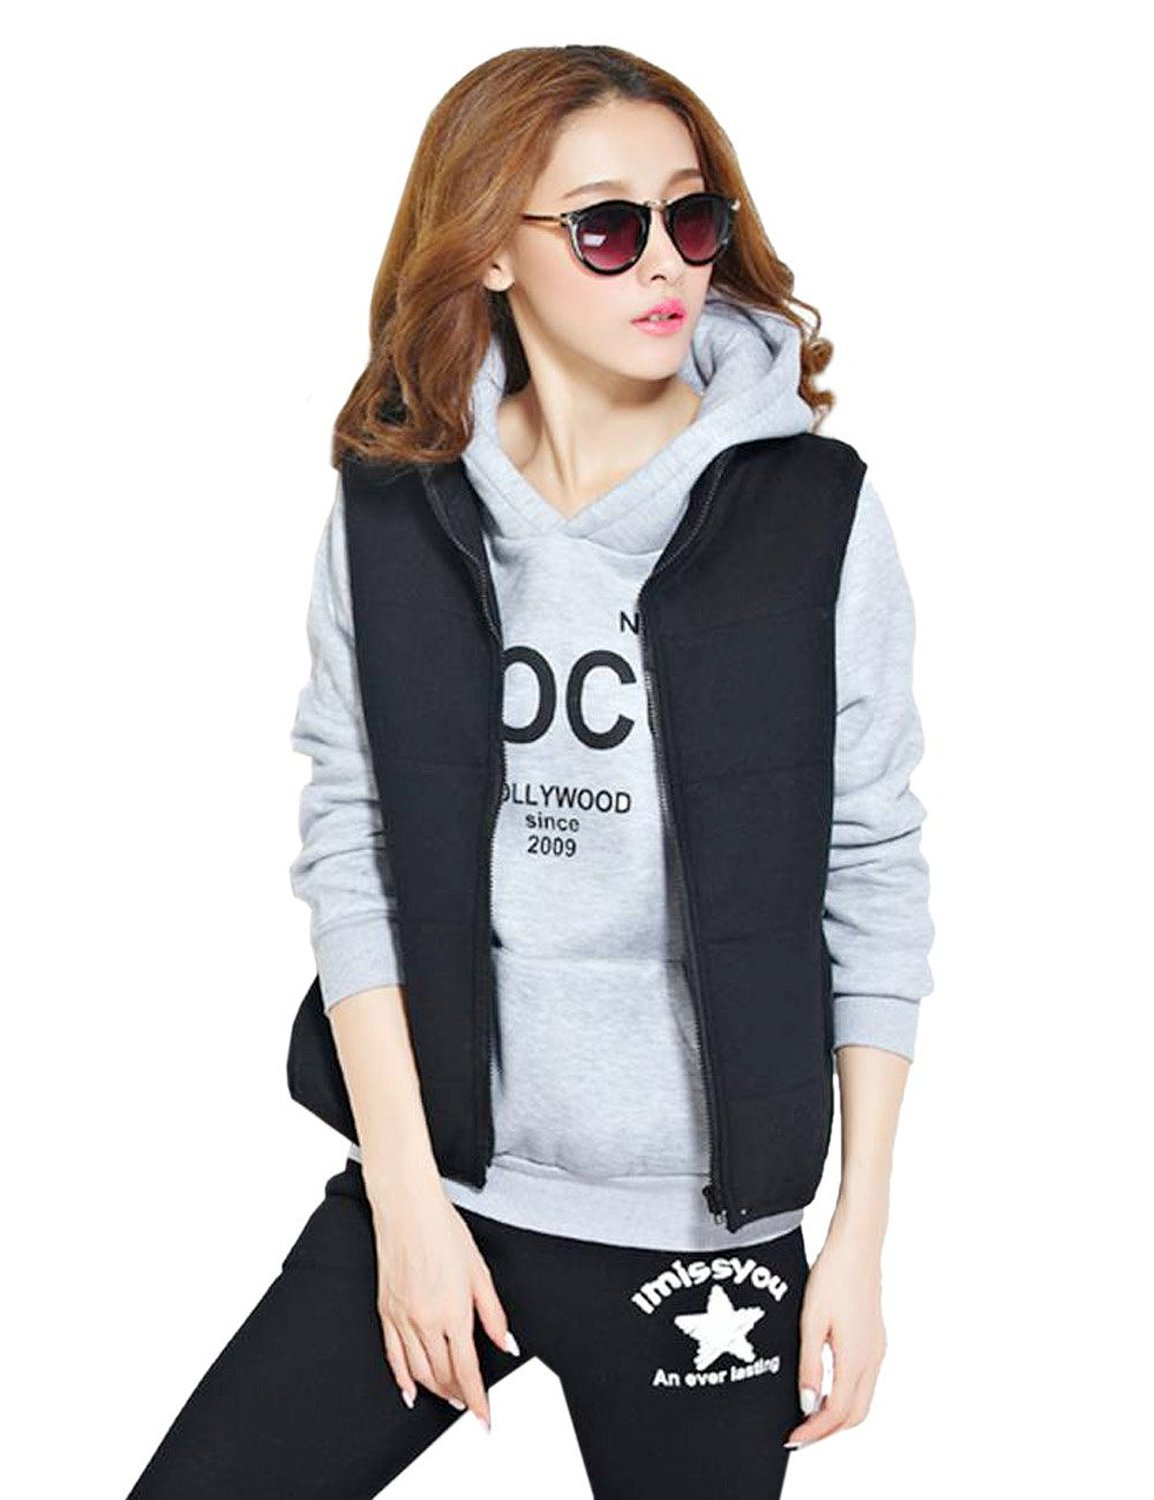 5335 # AliExpress Hot Selling COCO Printed Letter Sports Hoodie Suit Hooded Sweater Three-piece Set